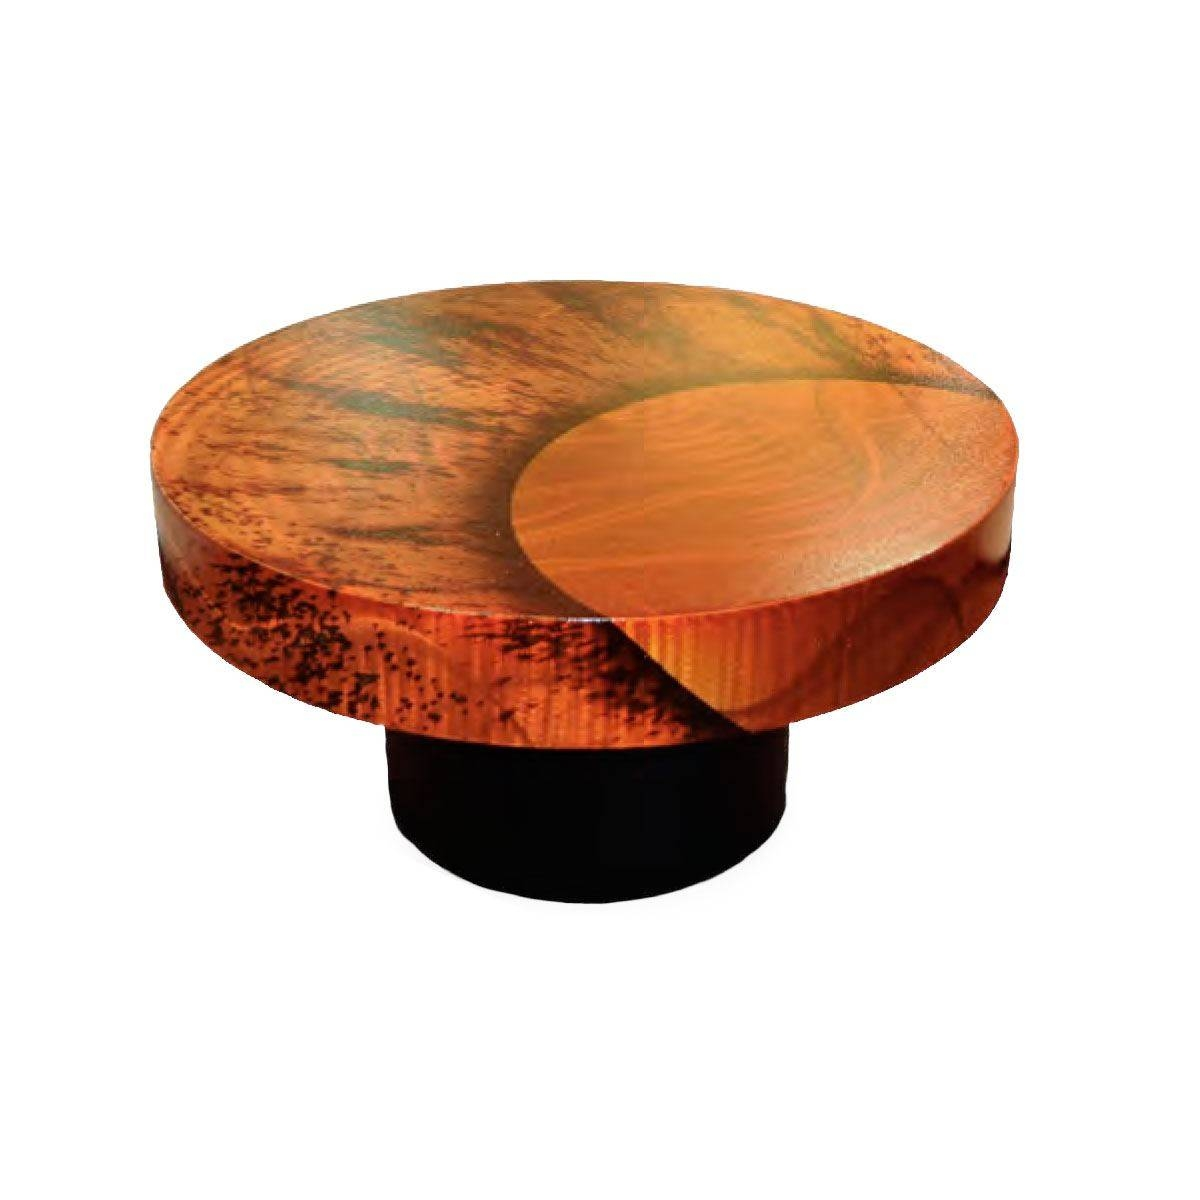 Harmoon Luna Coffee Table | King Dinettes within Luna Coffee Tables (Image 11 of 30)